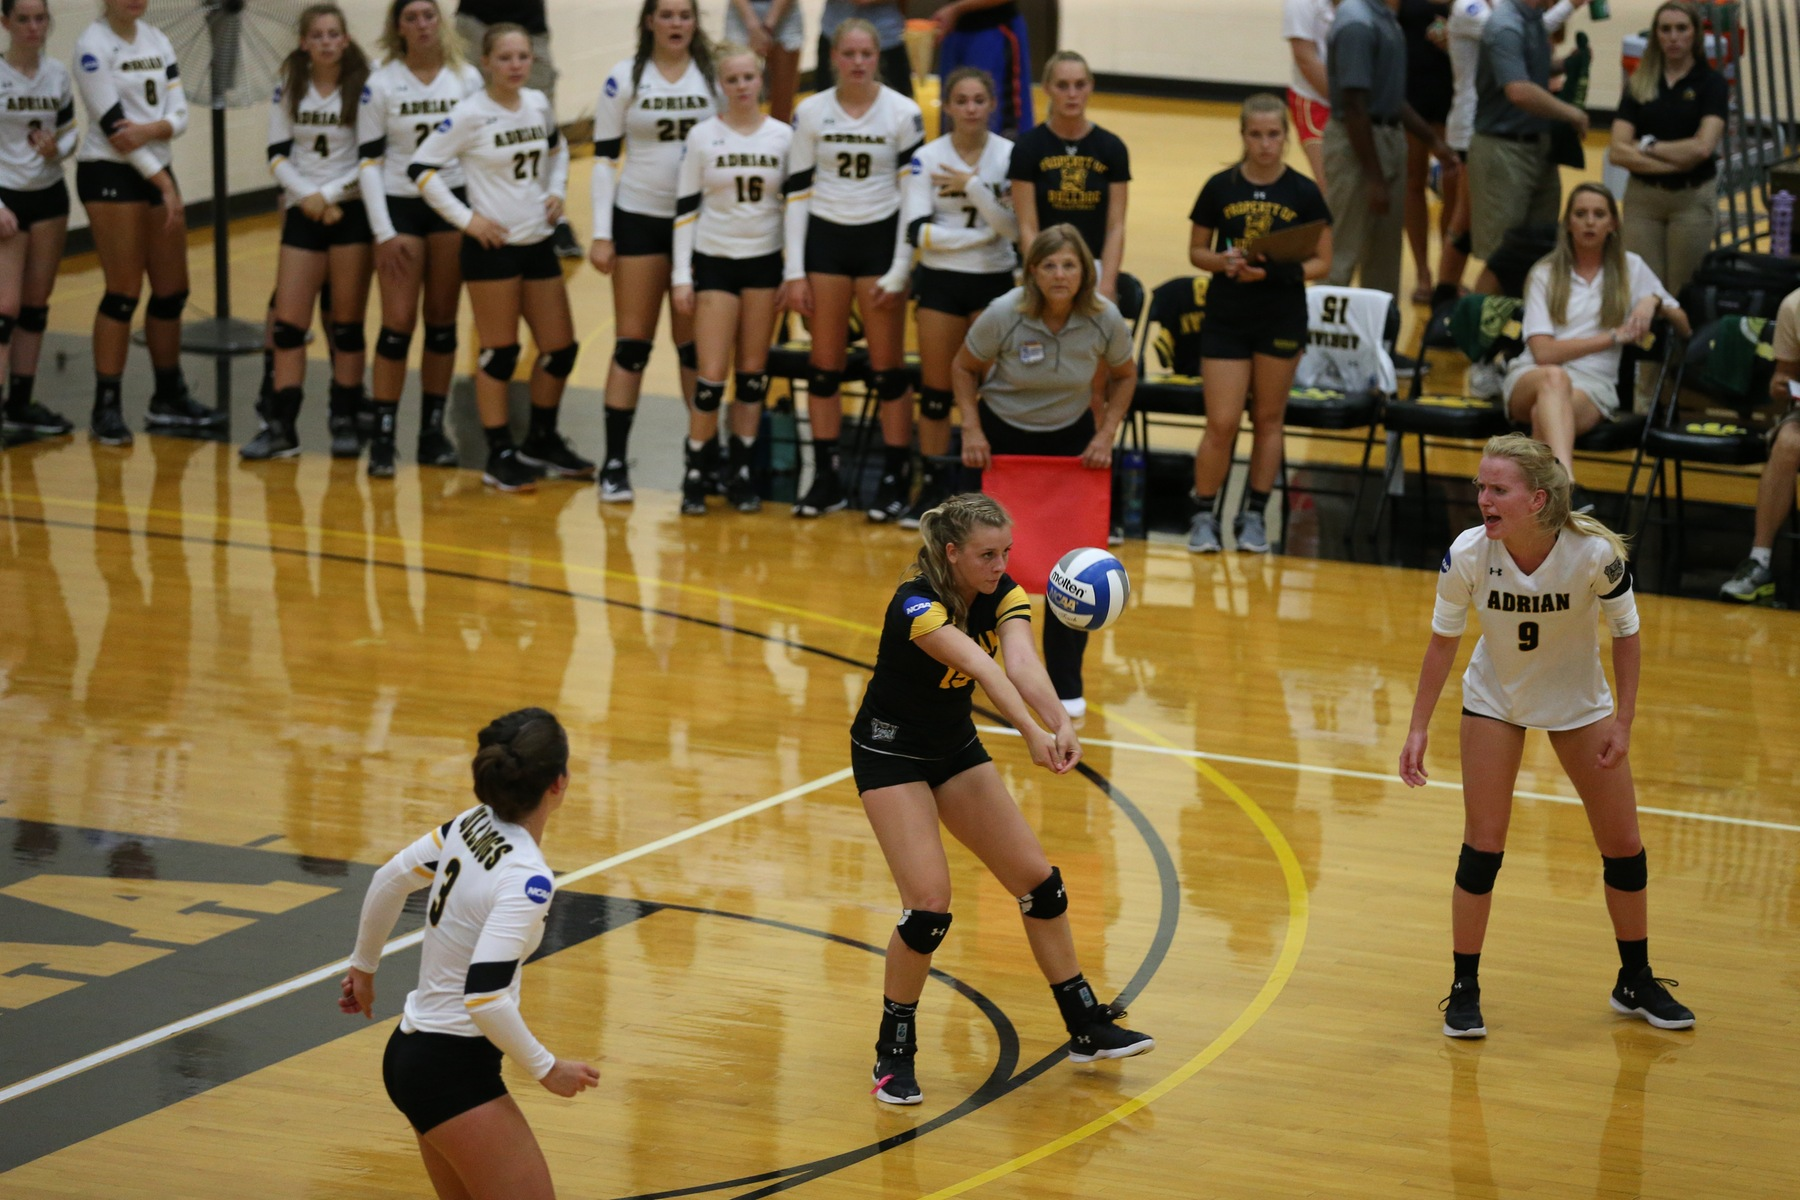 Bulldogs Fall to Terriers in Straight Sets